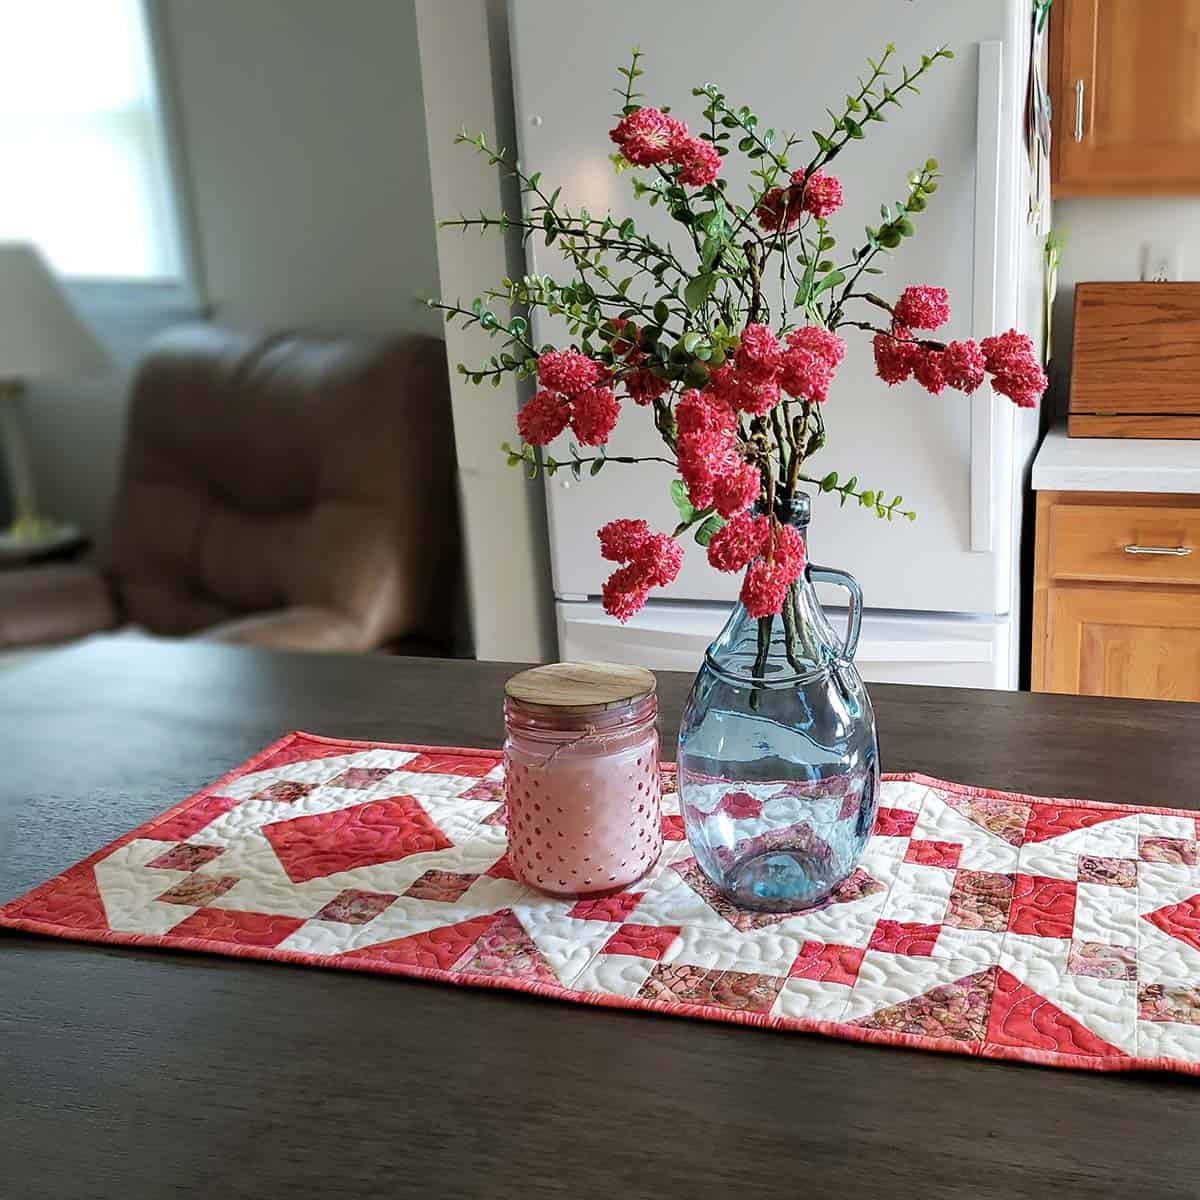 vase of flowers on quilted table runner